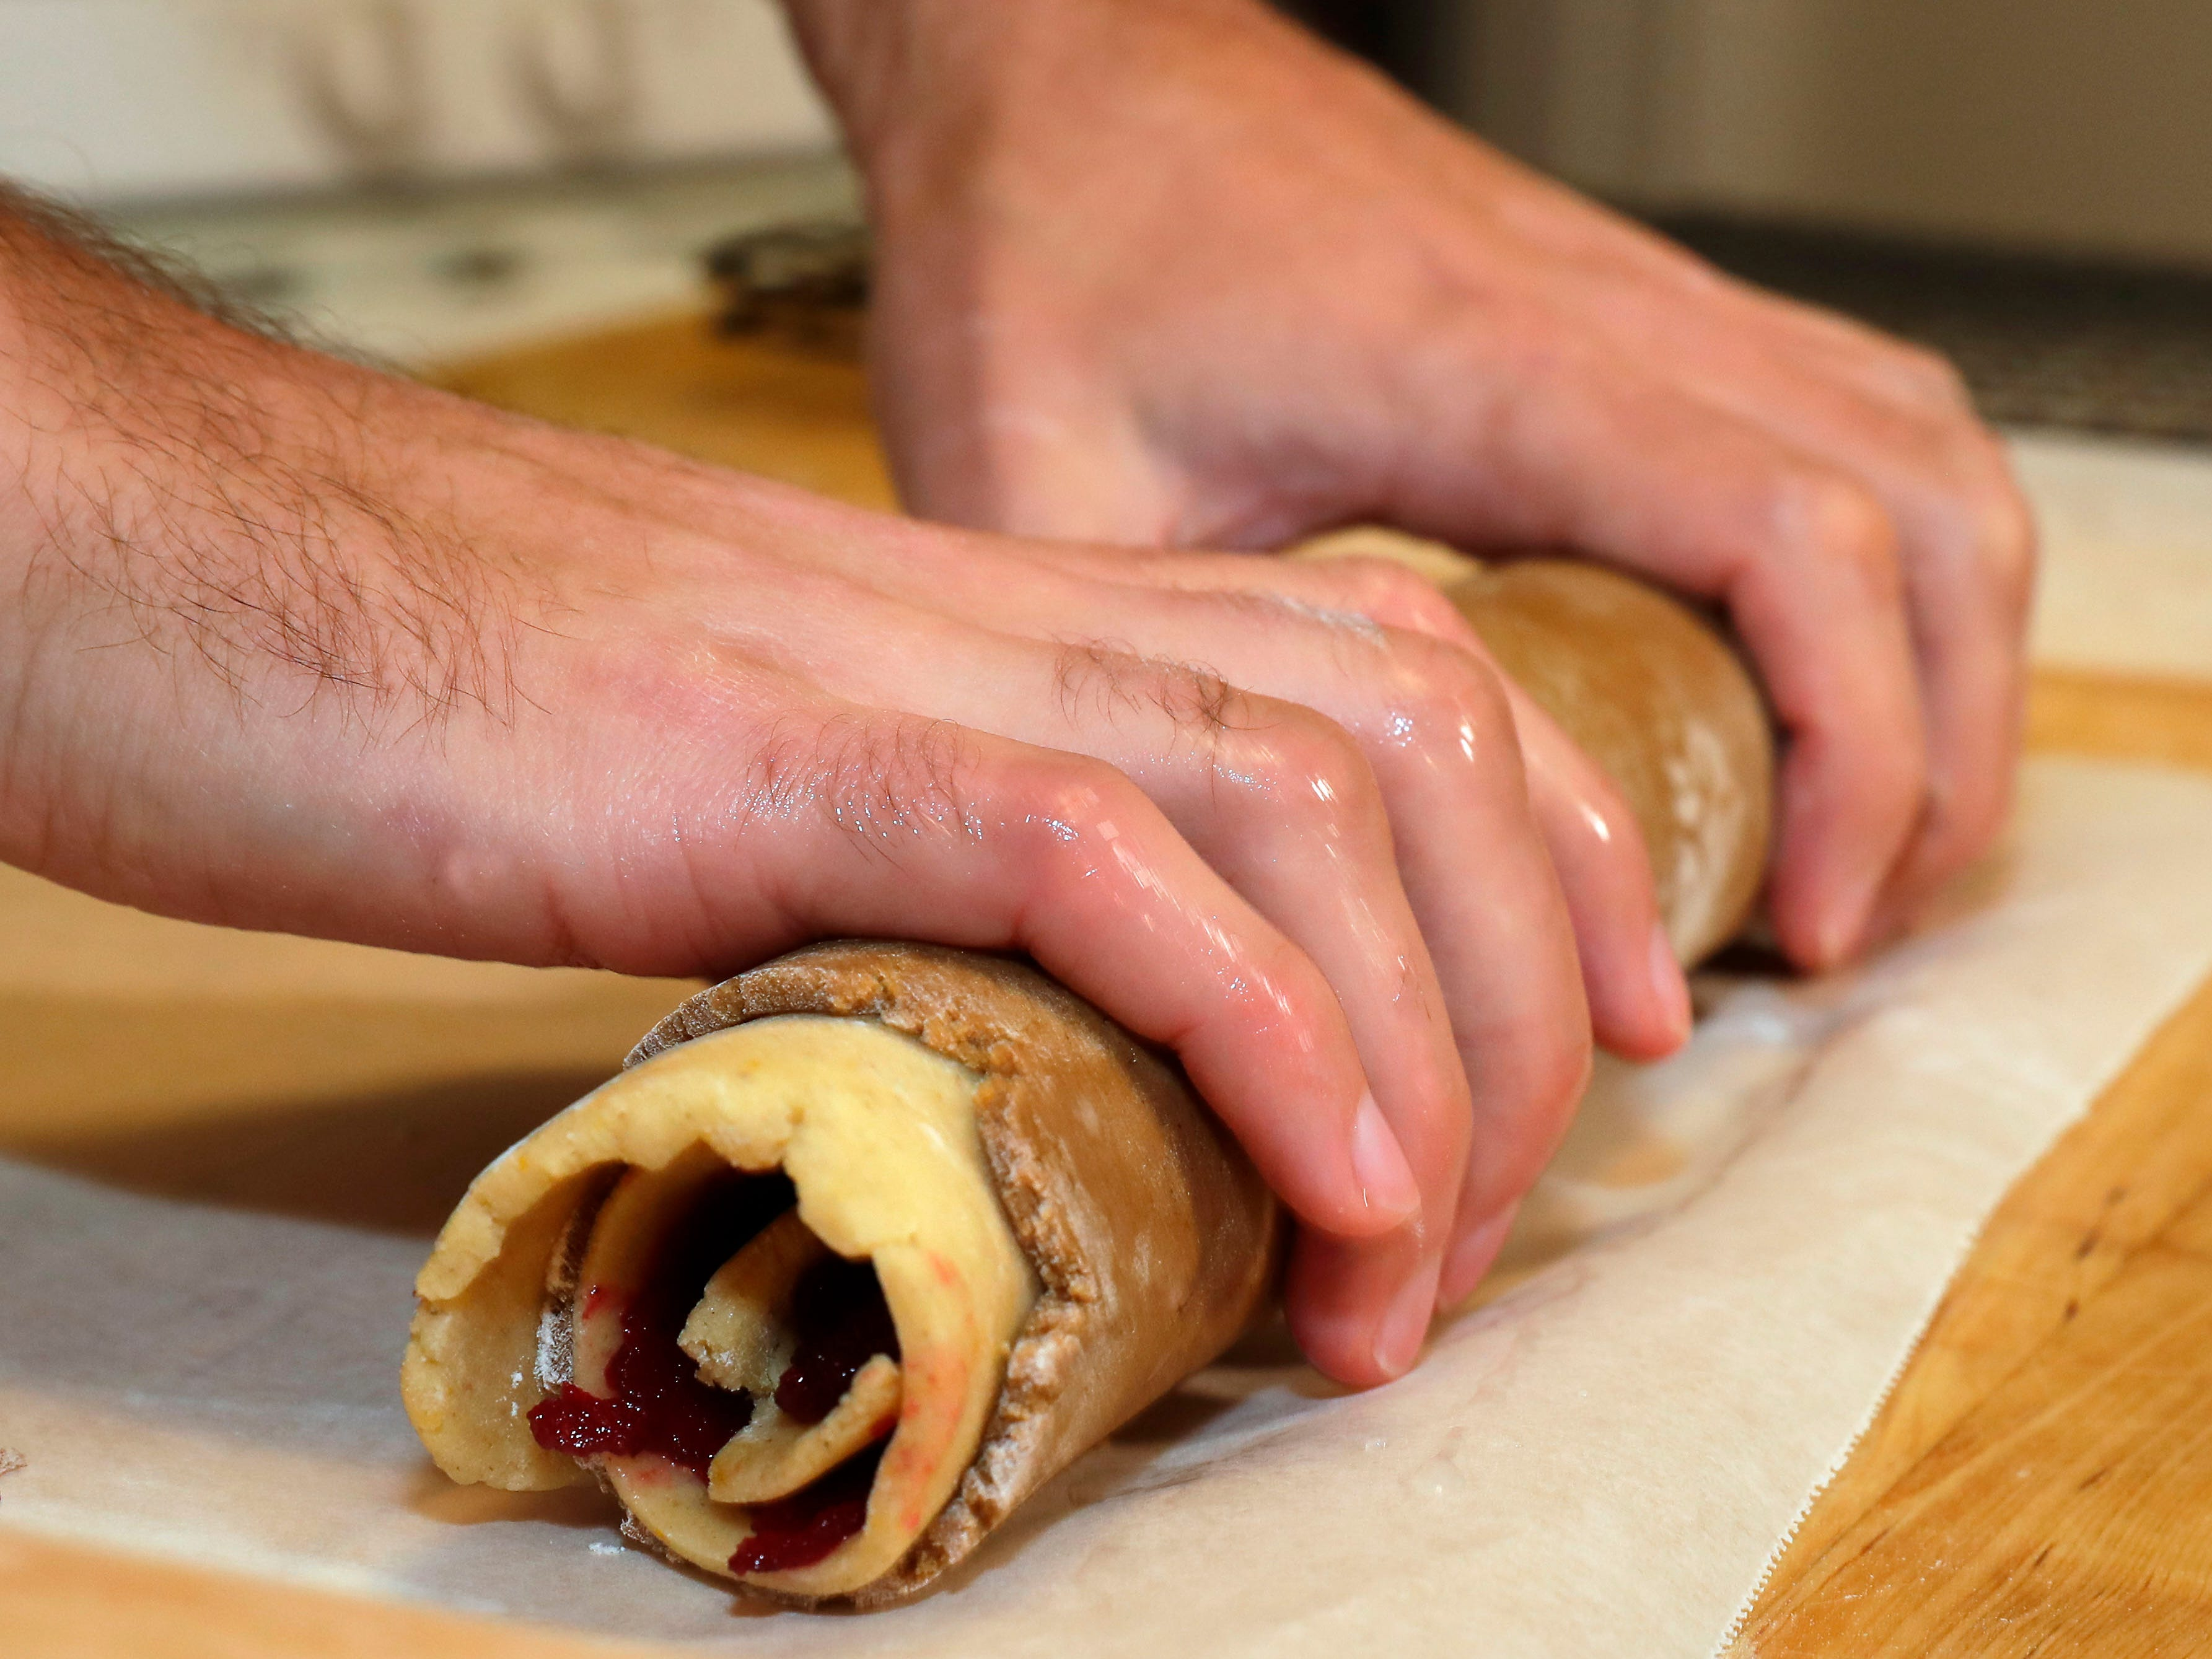 Behringer shapes the roll to help the layers adhere before putting it in the freezer.